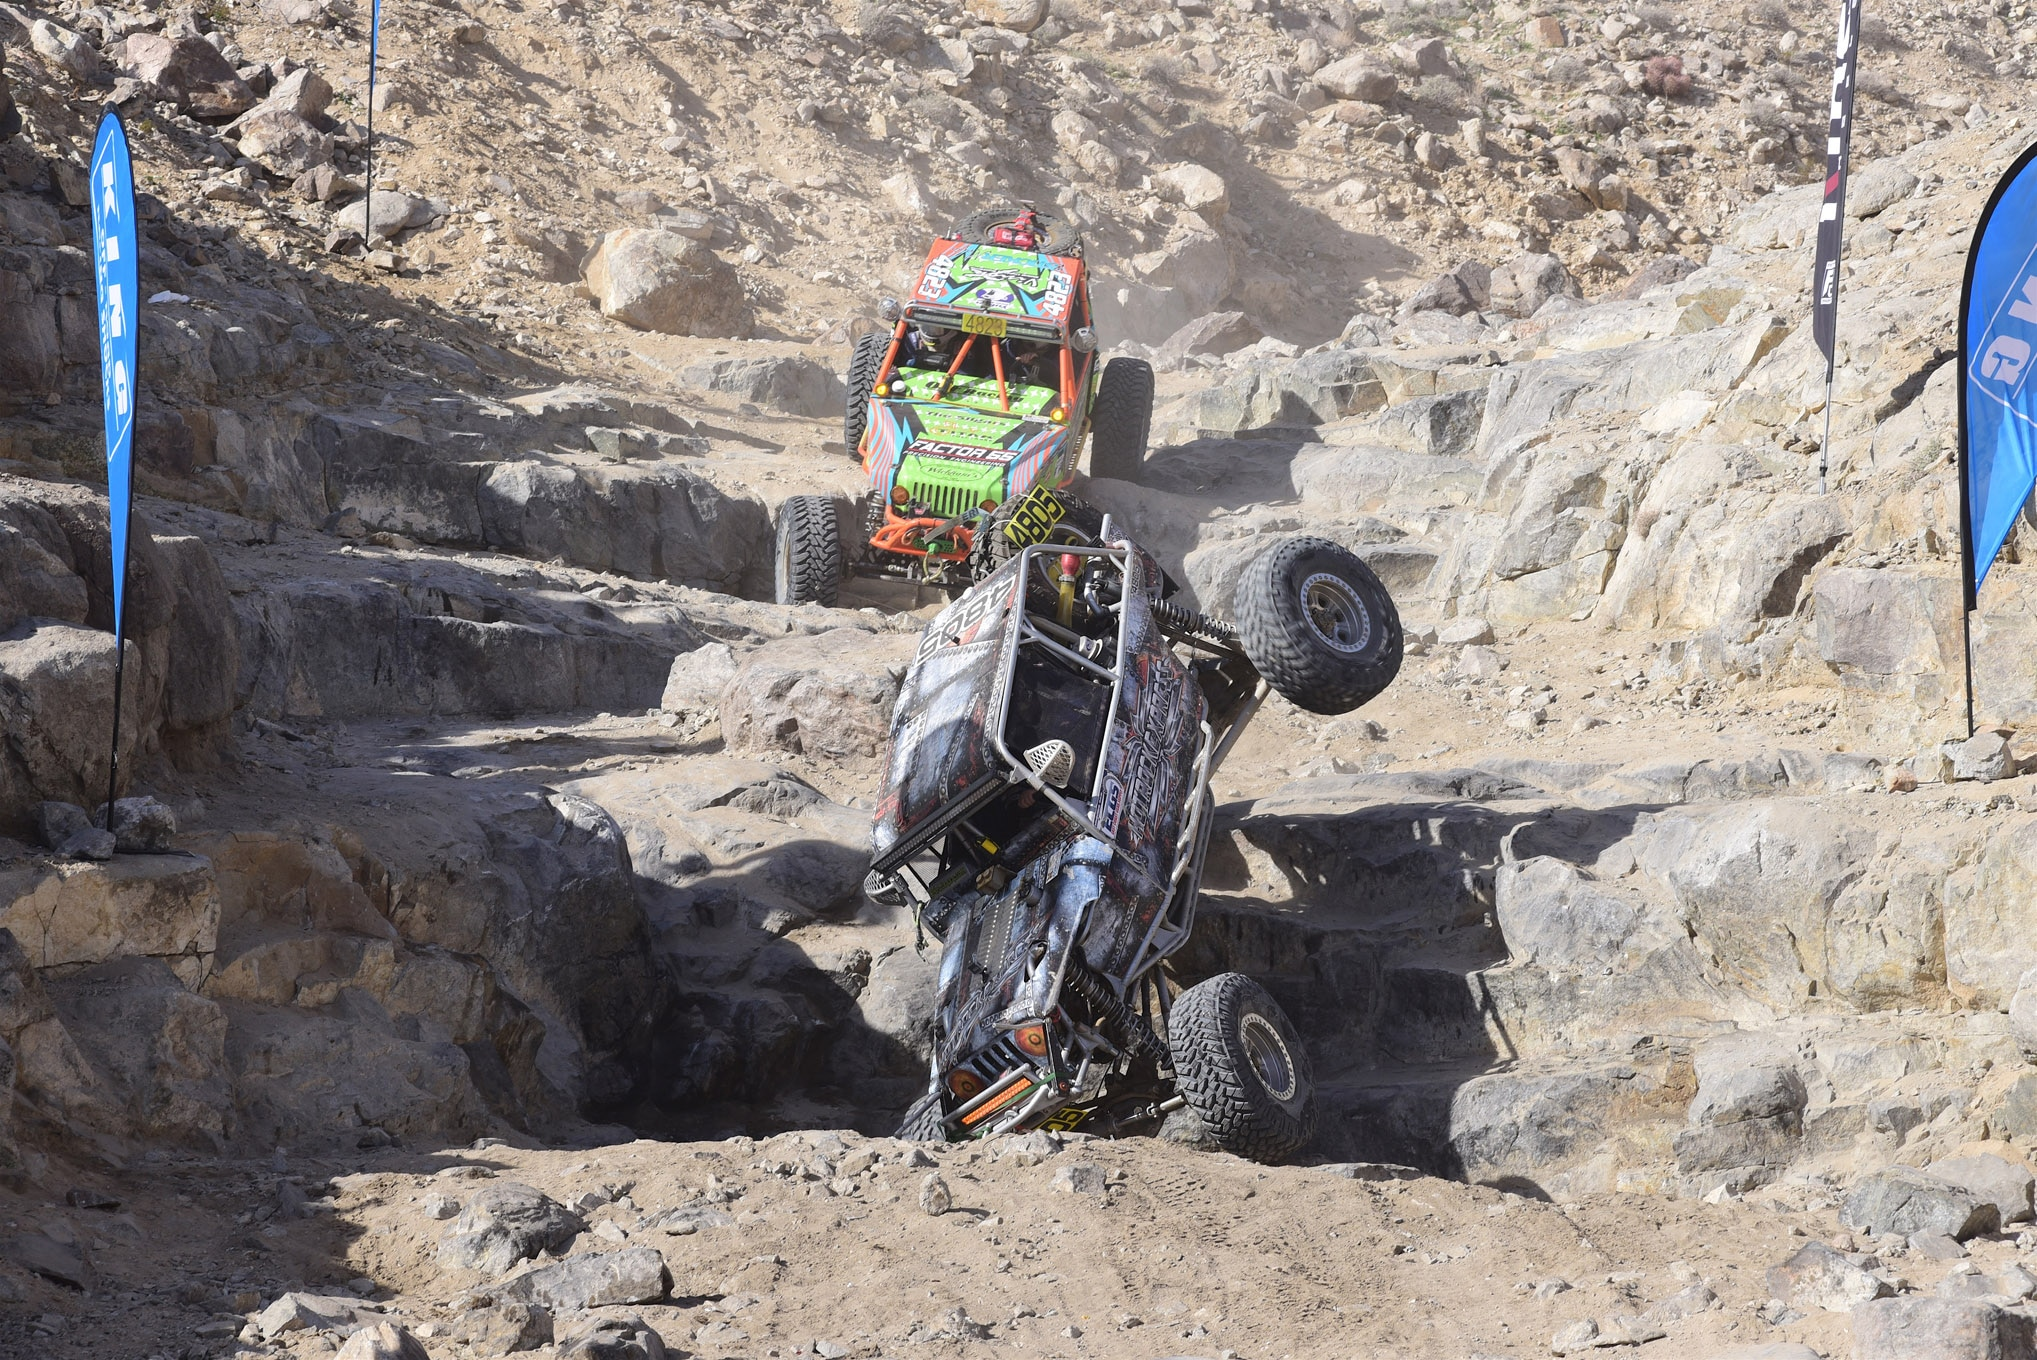 052 2017 king of the hammers koh racecar action on course stuart bourdon photographer